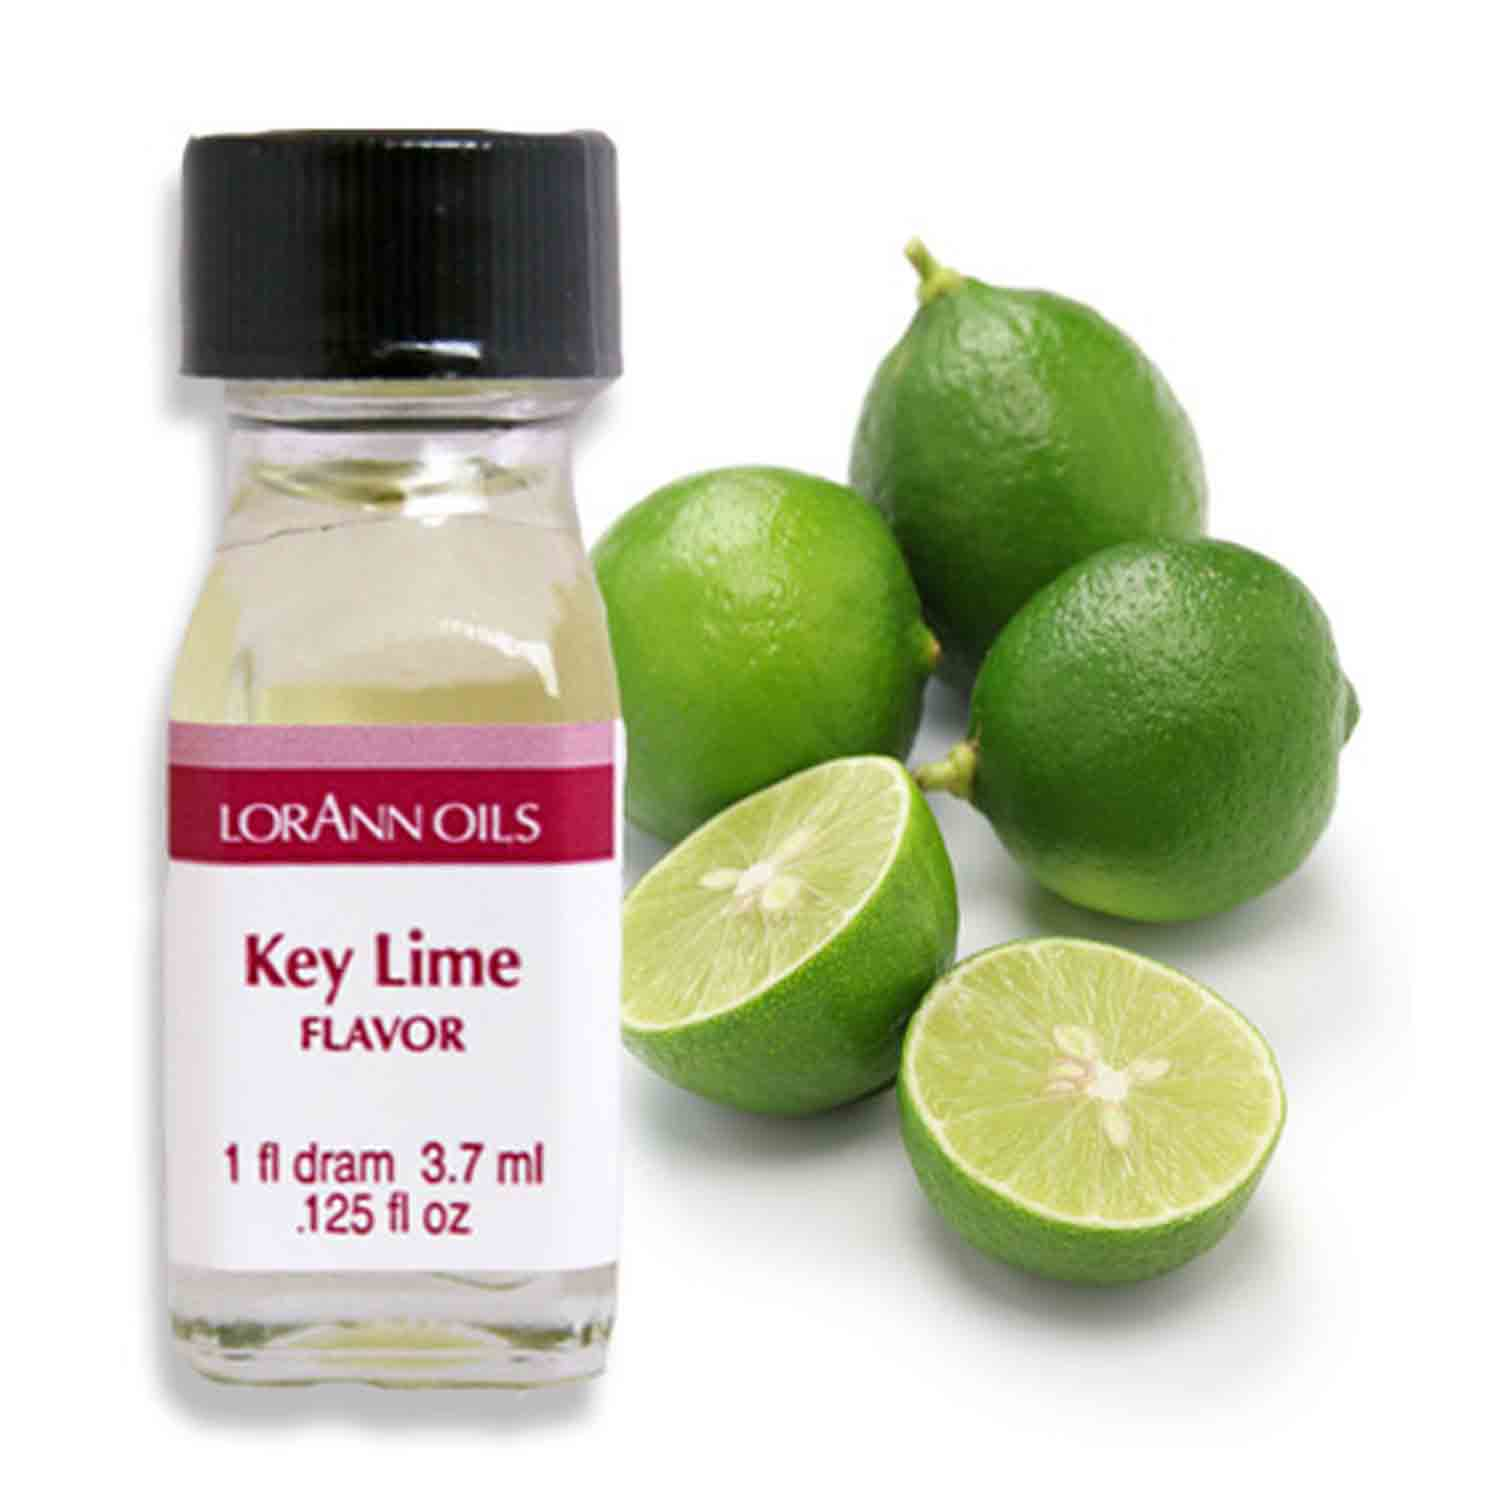 Key-Lime LorAnn Super-Strength Oil